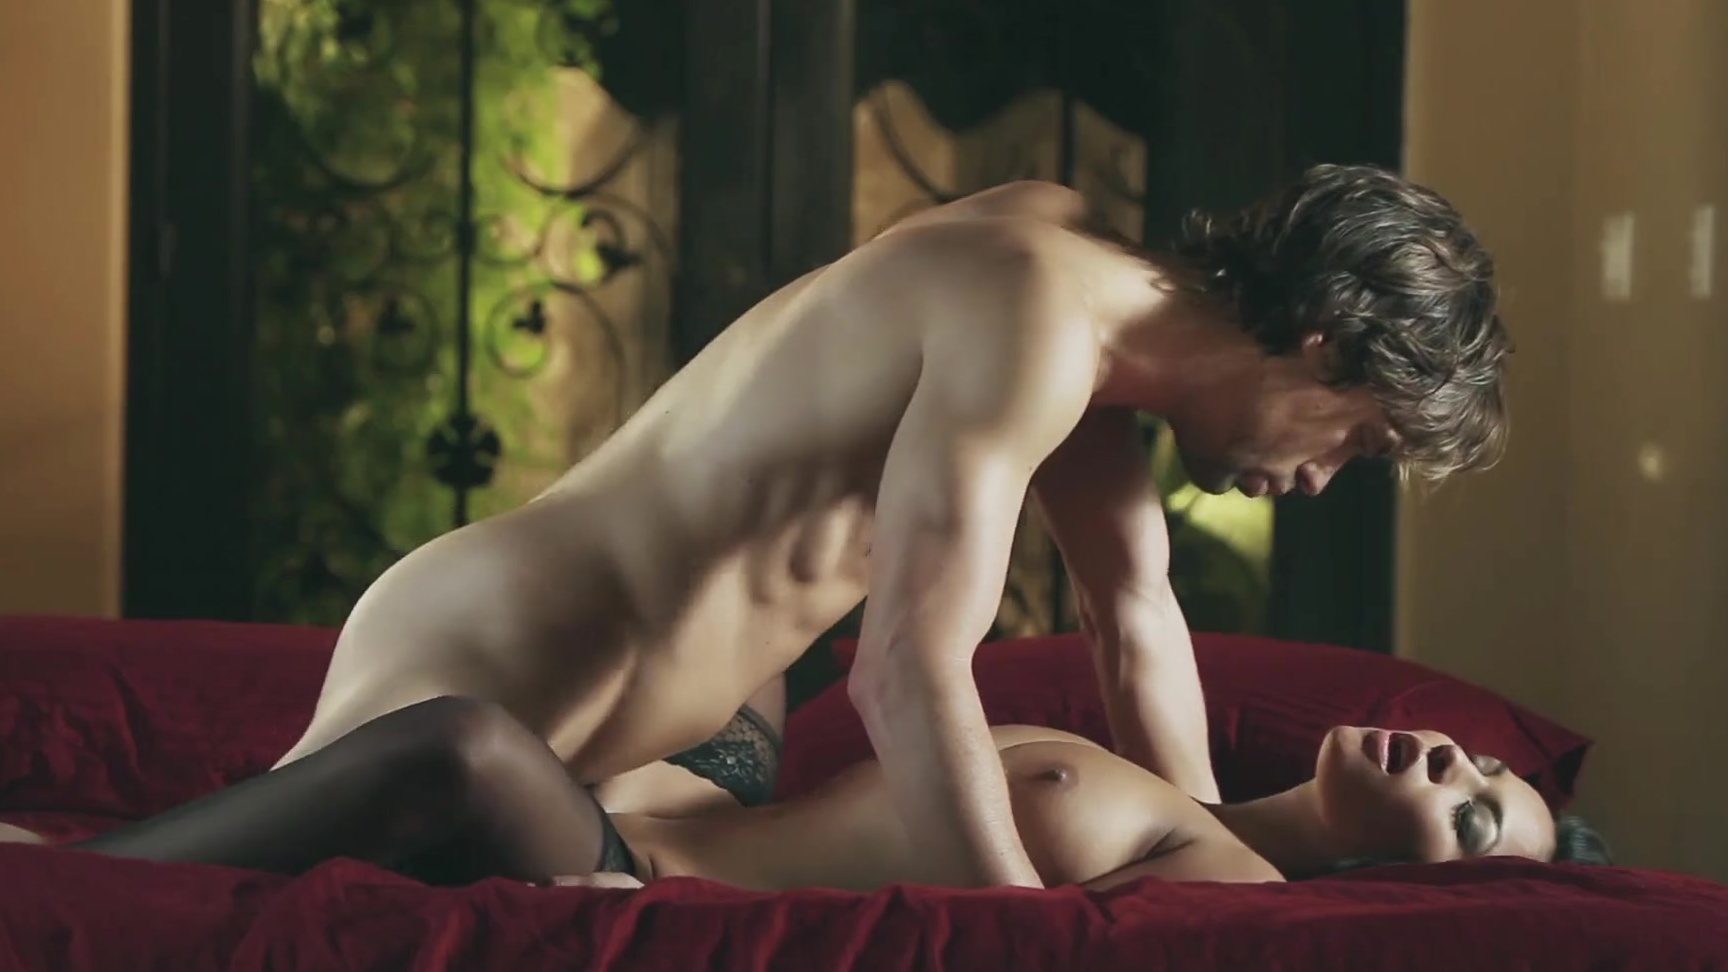 Adrianna Luna Enjoying Erotic Lovemaking Session With Her Lover